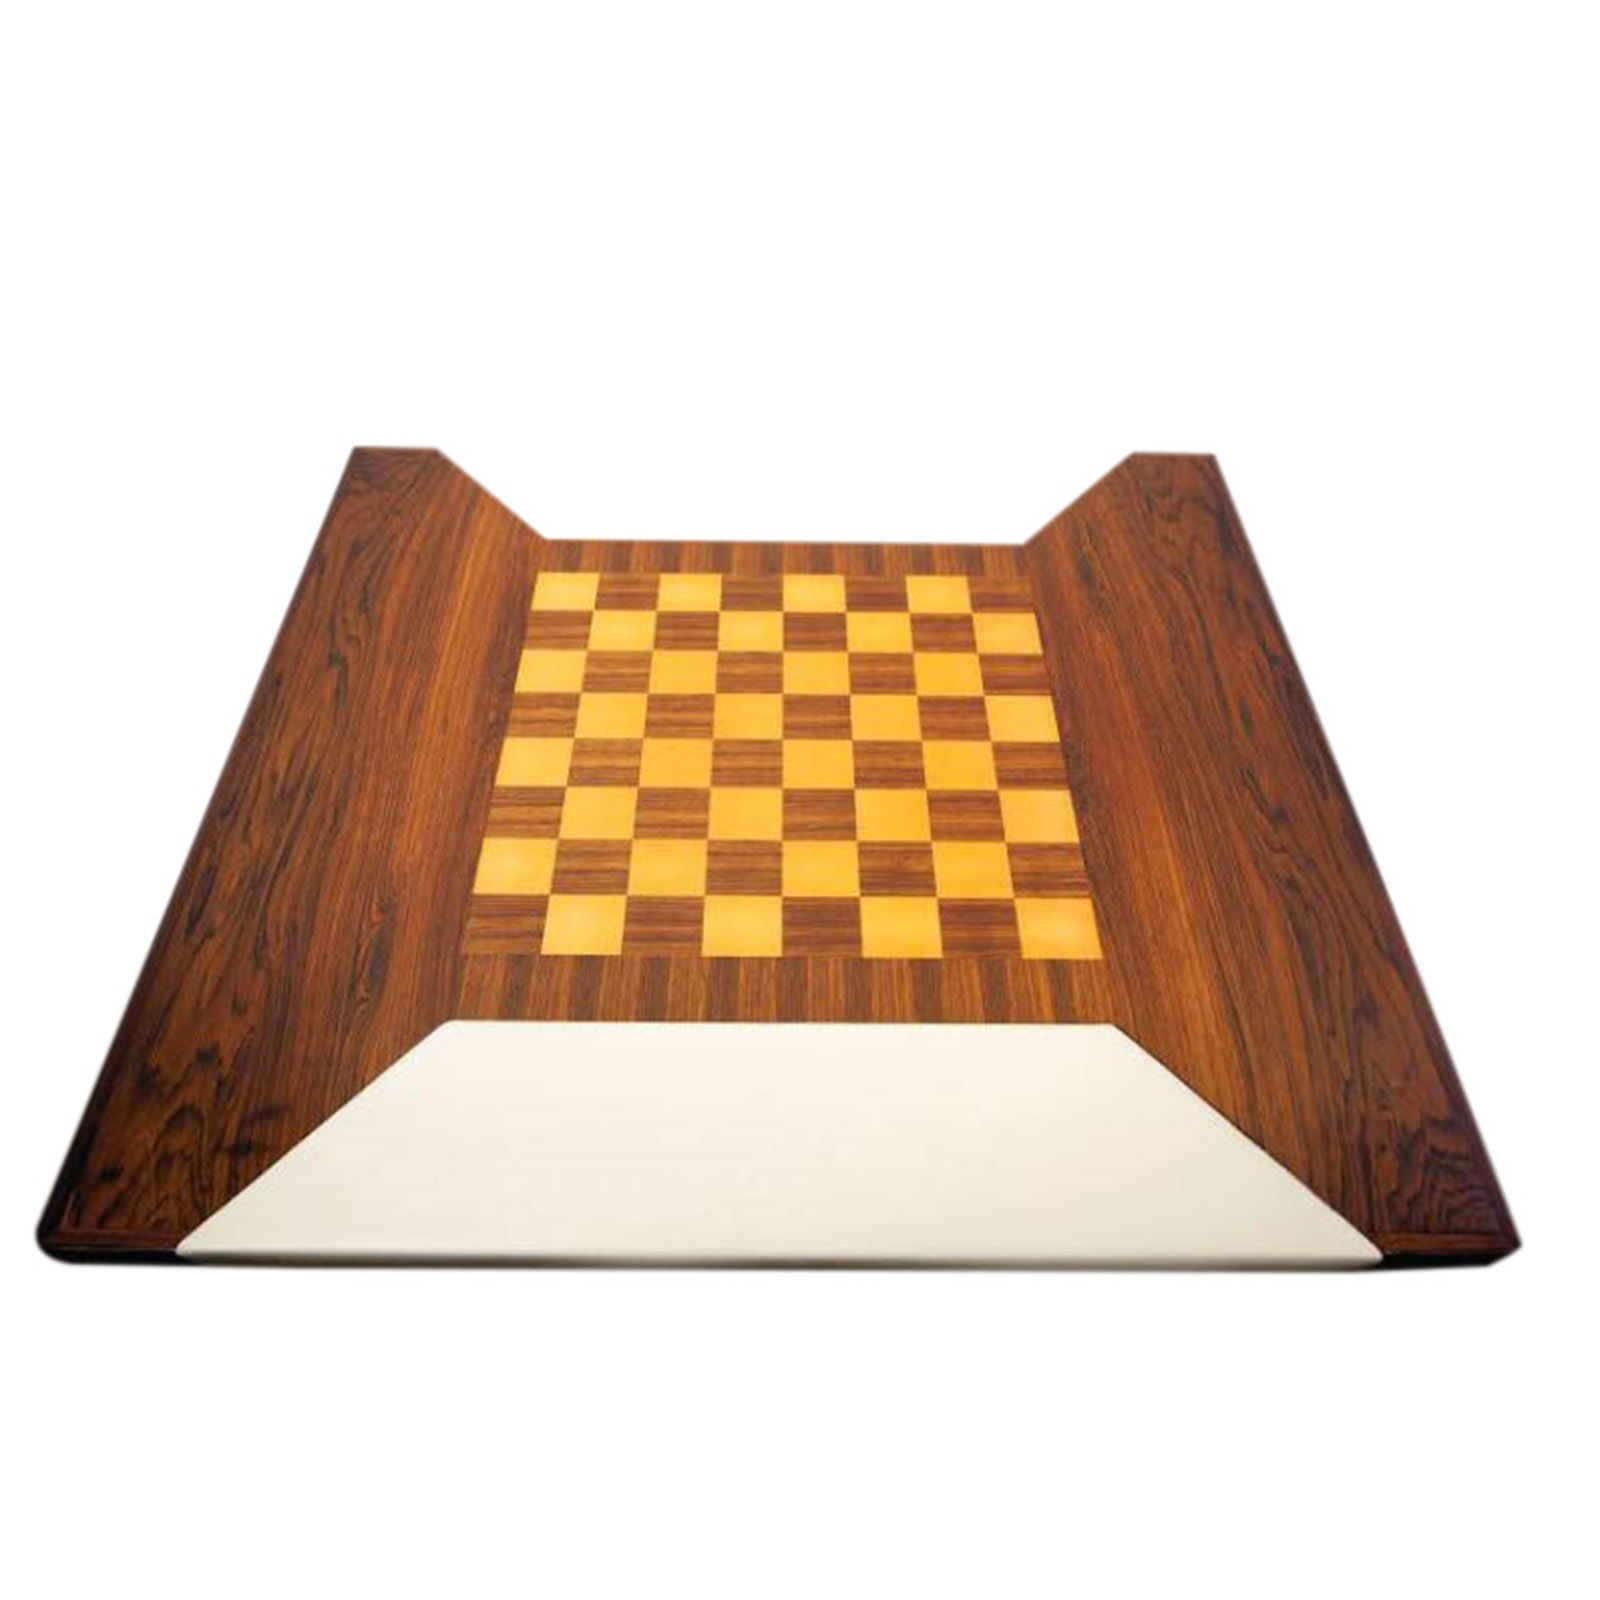 Very Cool Scandinavian Games Table on an Aluminium Base